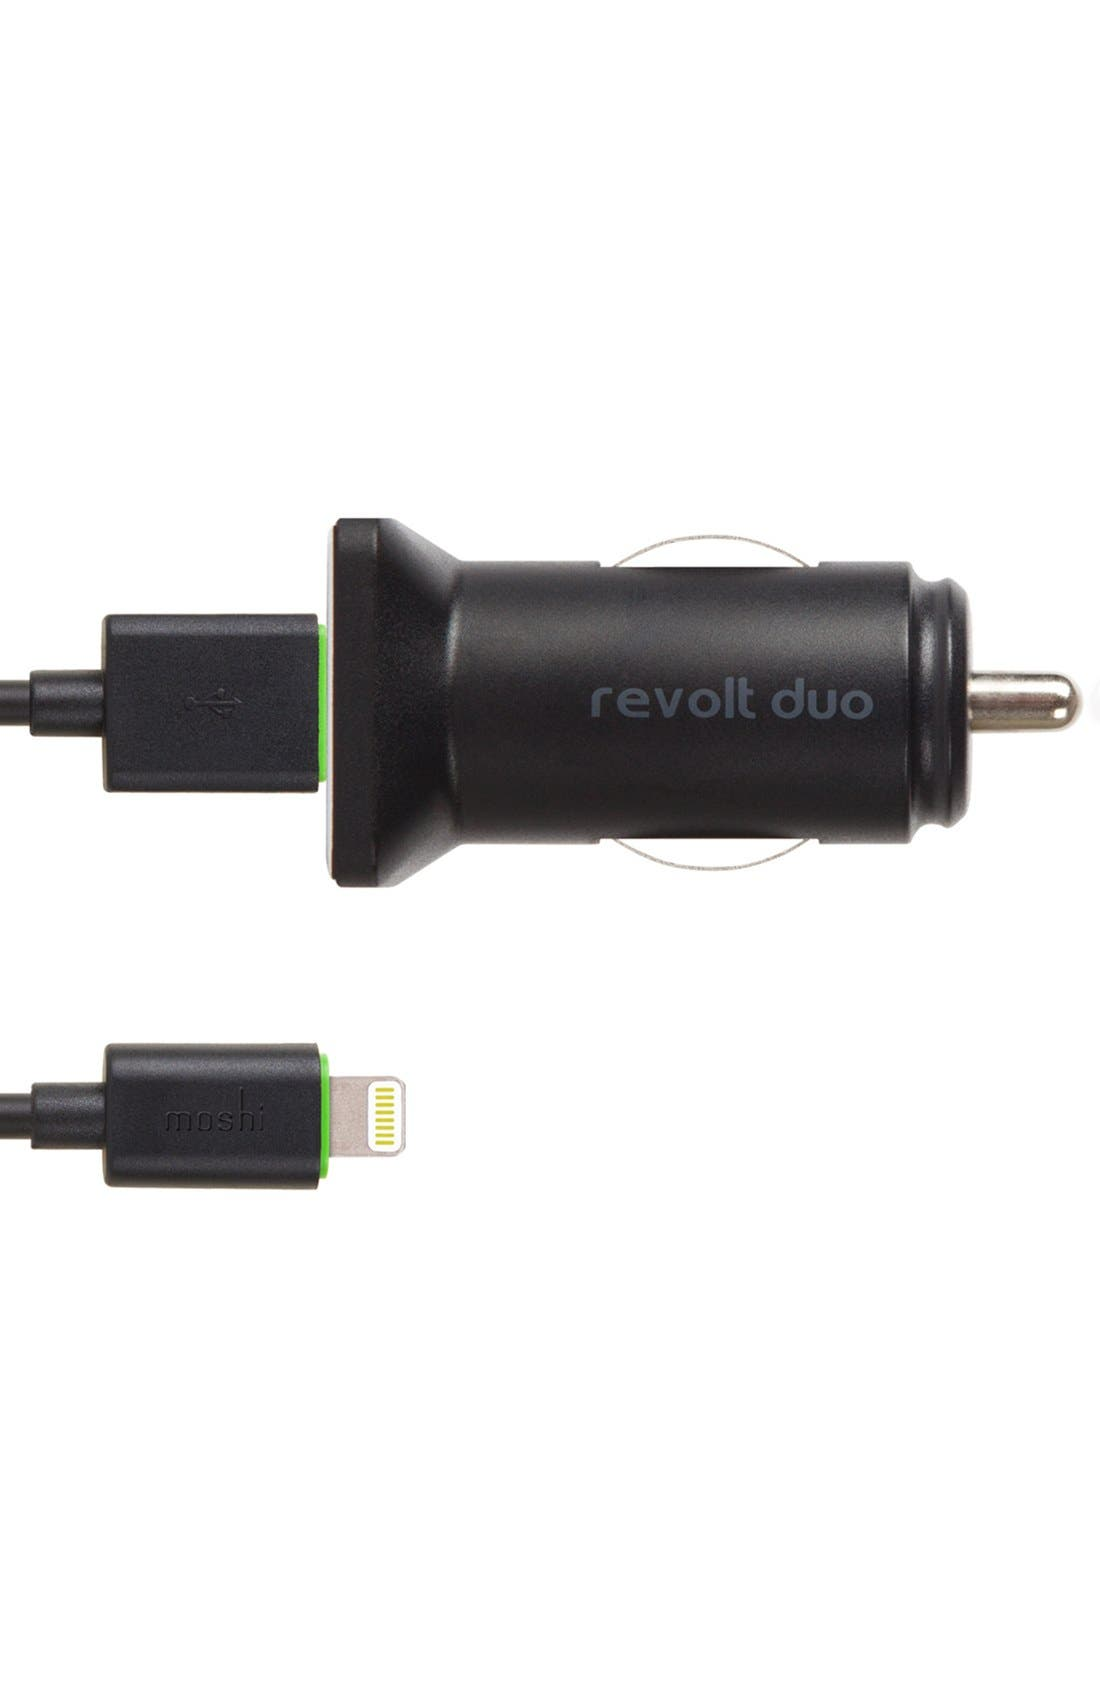 MOSHI Revolt Duo 20W USB Car Charger with Lightning Cable